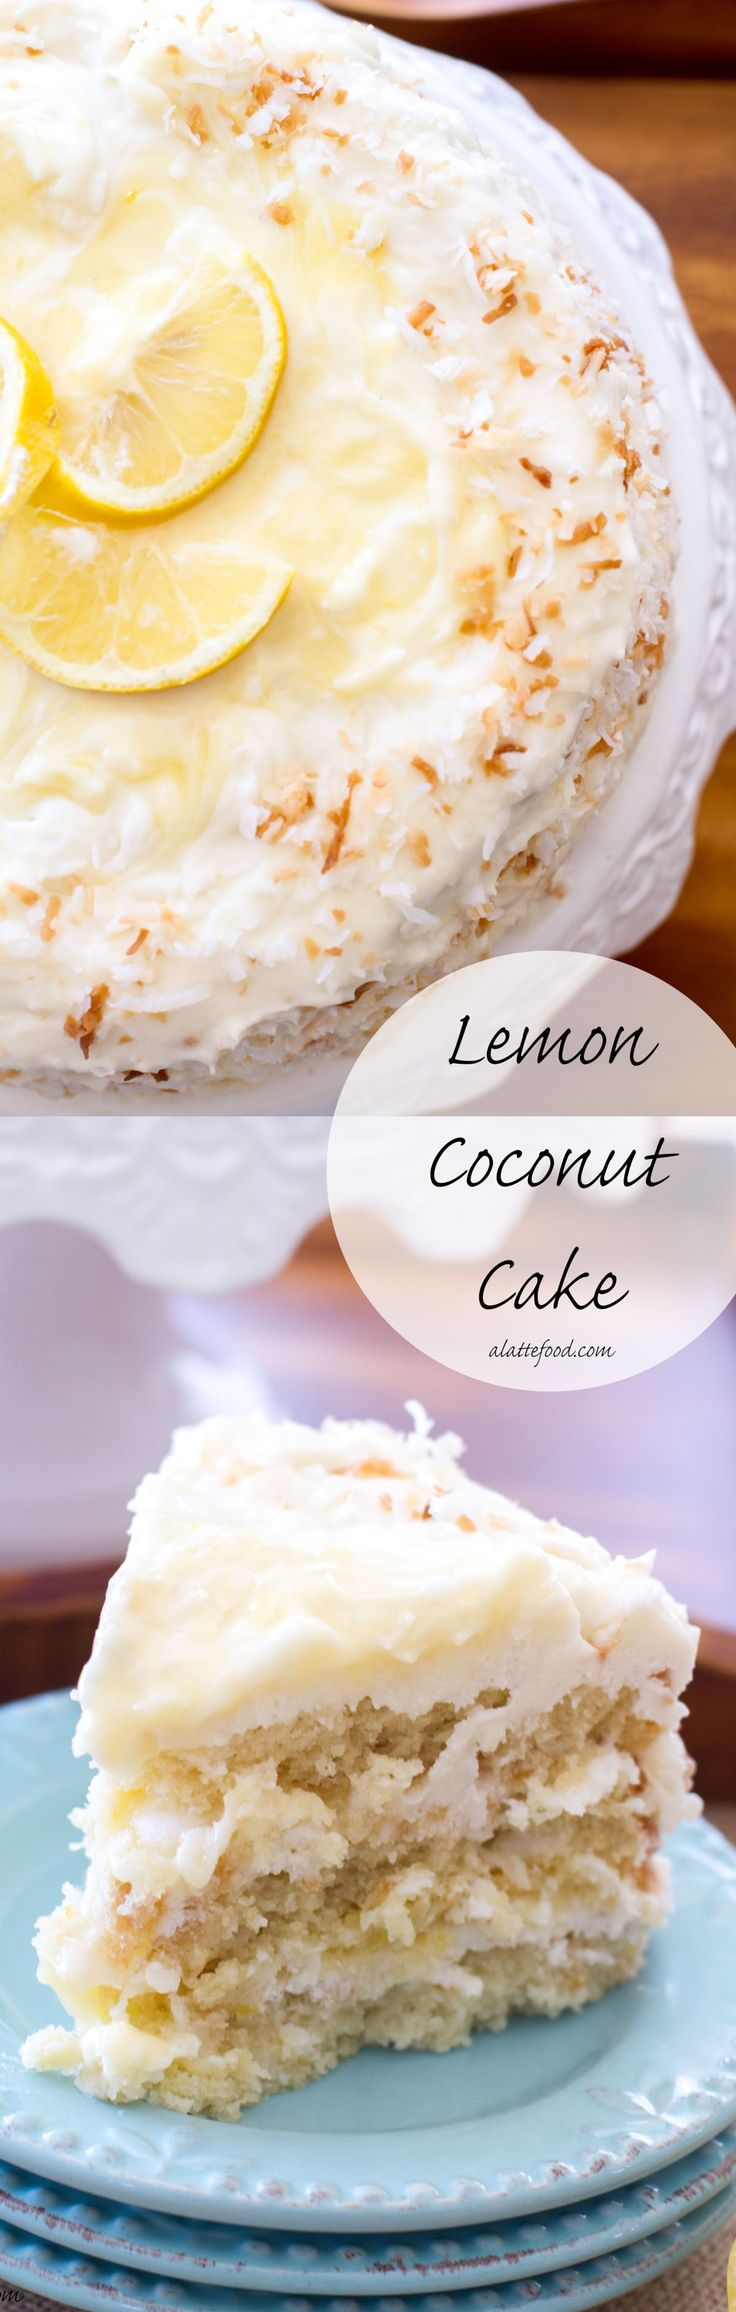 This refreshing, toothsome coconut cake is filled with lemon curd and topped with a lemon cream cheese frosting. Check out the recipe!